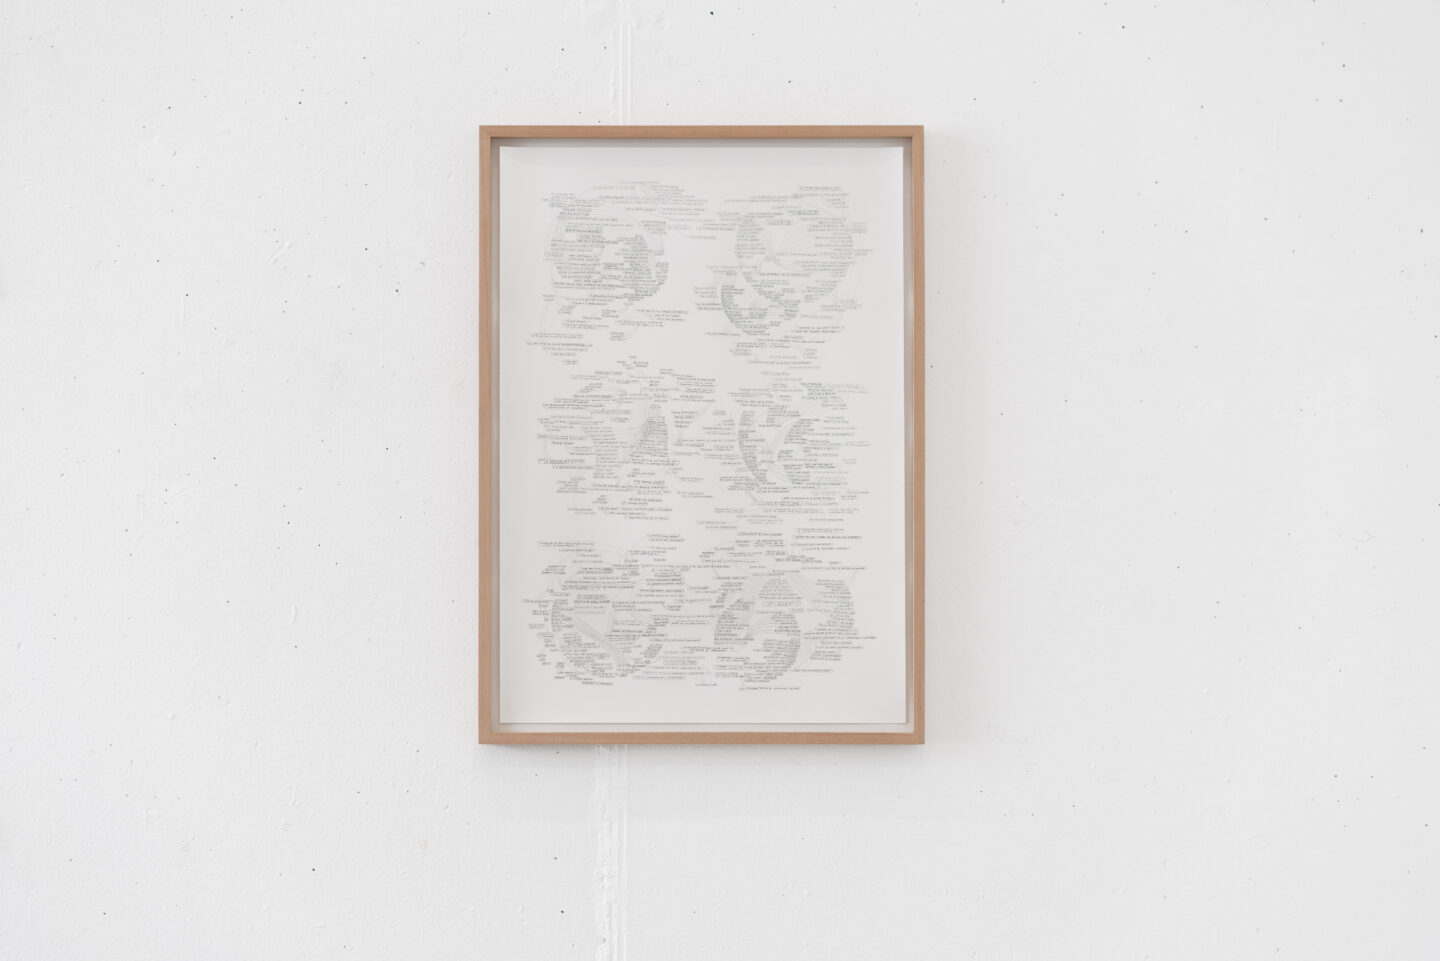 Exhibition View Nathalie Perrin Soloshow «The fragility of warm-blooded creatures; view on Long Play II, 2019» at Galerie Heinzer Reszler, Lausanne, 2019 / Courtesy: the artist and Heinzer Reszler